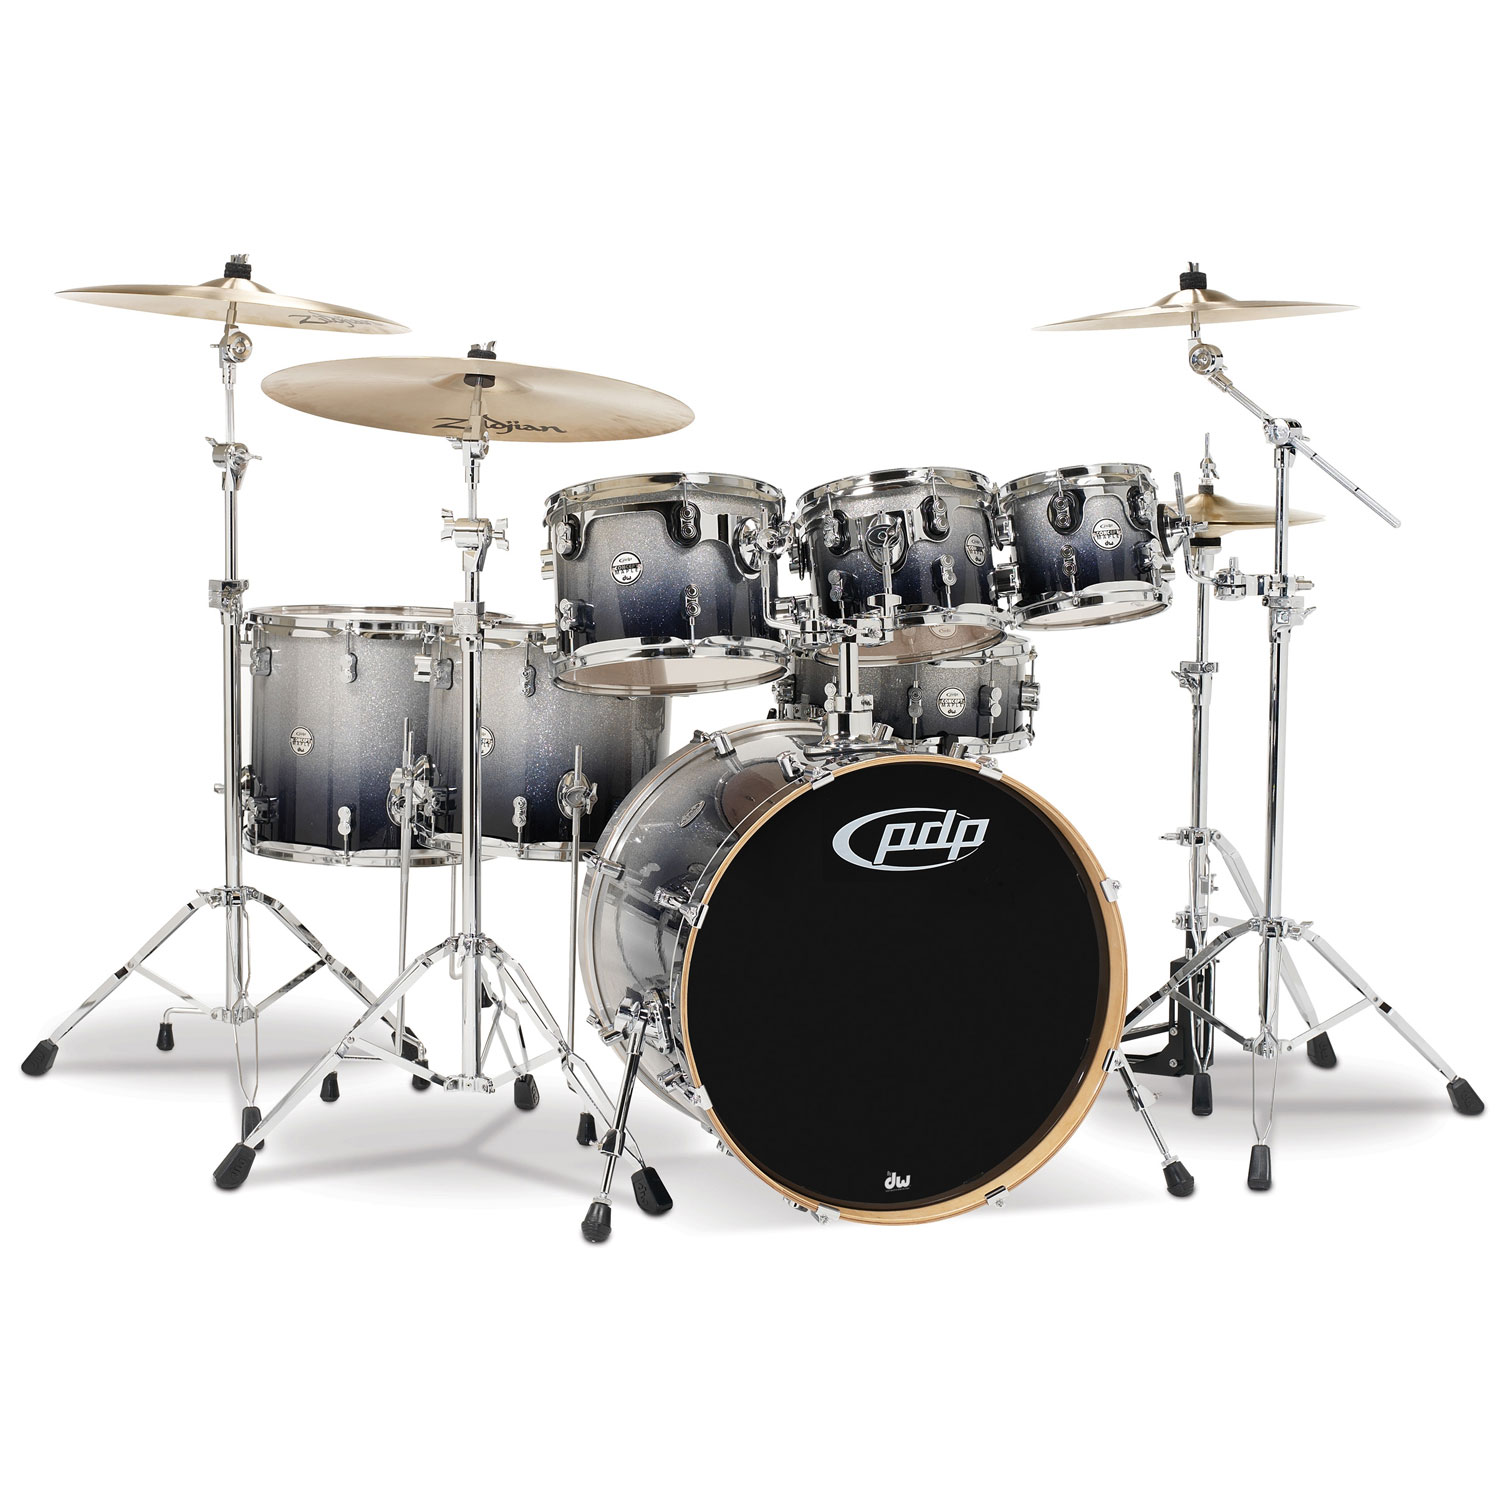 "PDP CM7 Concept Maple 7-Piece Drum Set Shell Pack (22"" Bass, 8/10/12/14/16"" Toms, 14"" Snare)"